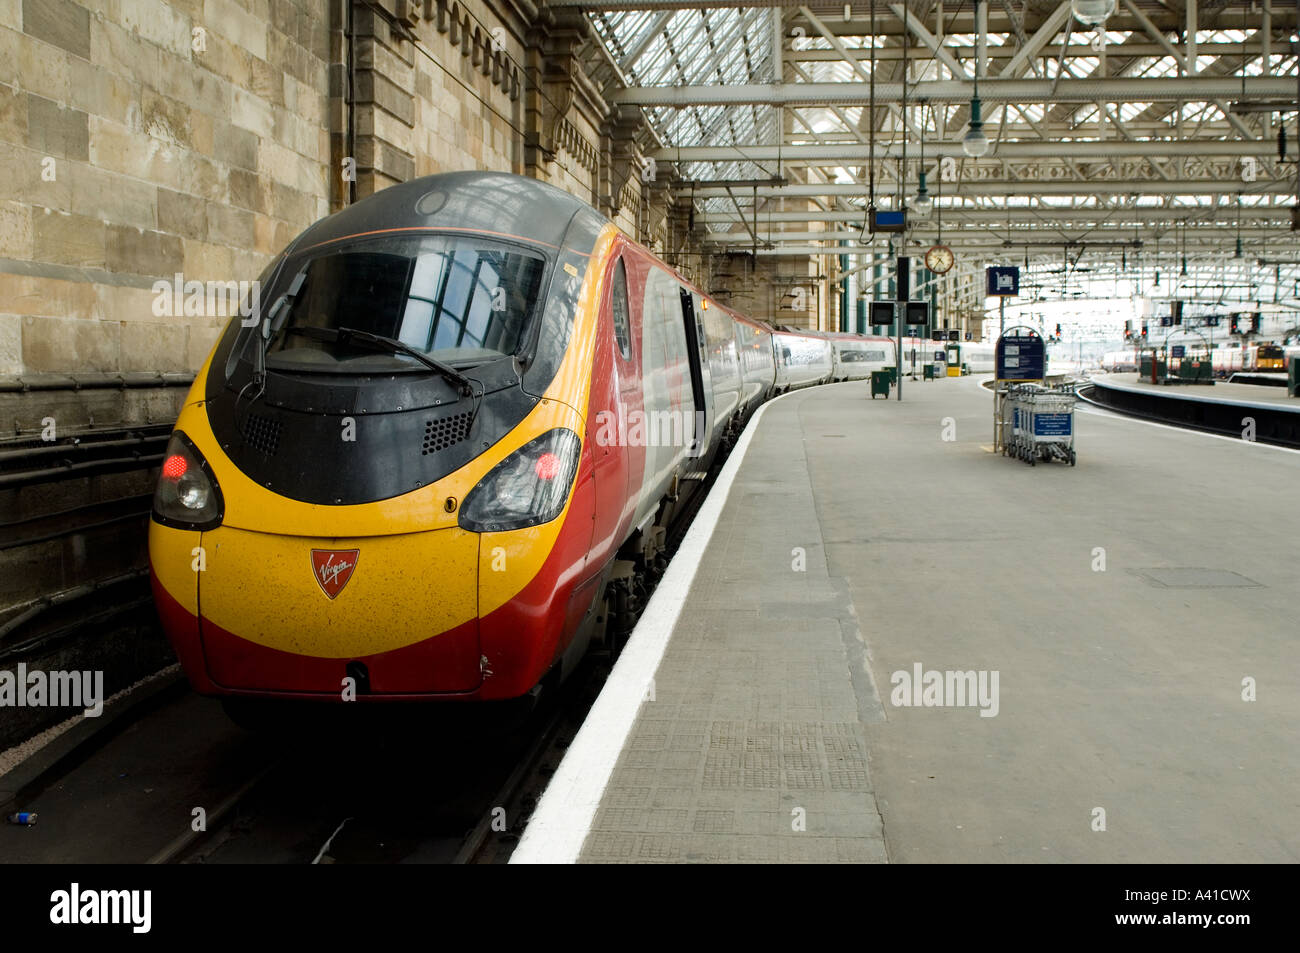 Glasgow Central Station is the main railway station for Glasgow, including the north-south link with Virgin Trains. - Stock Image